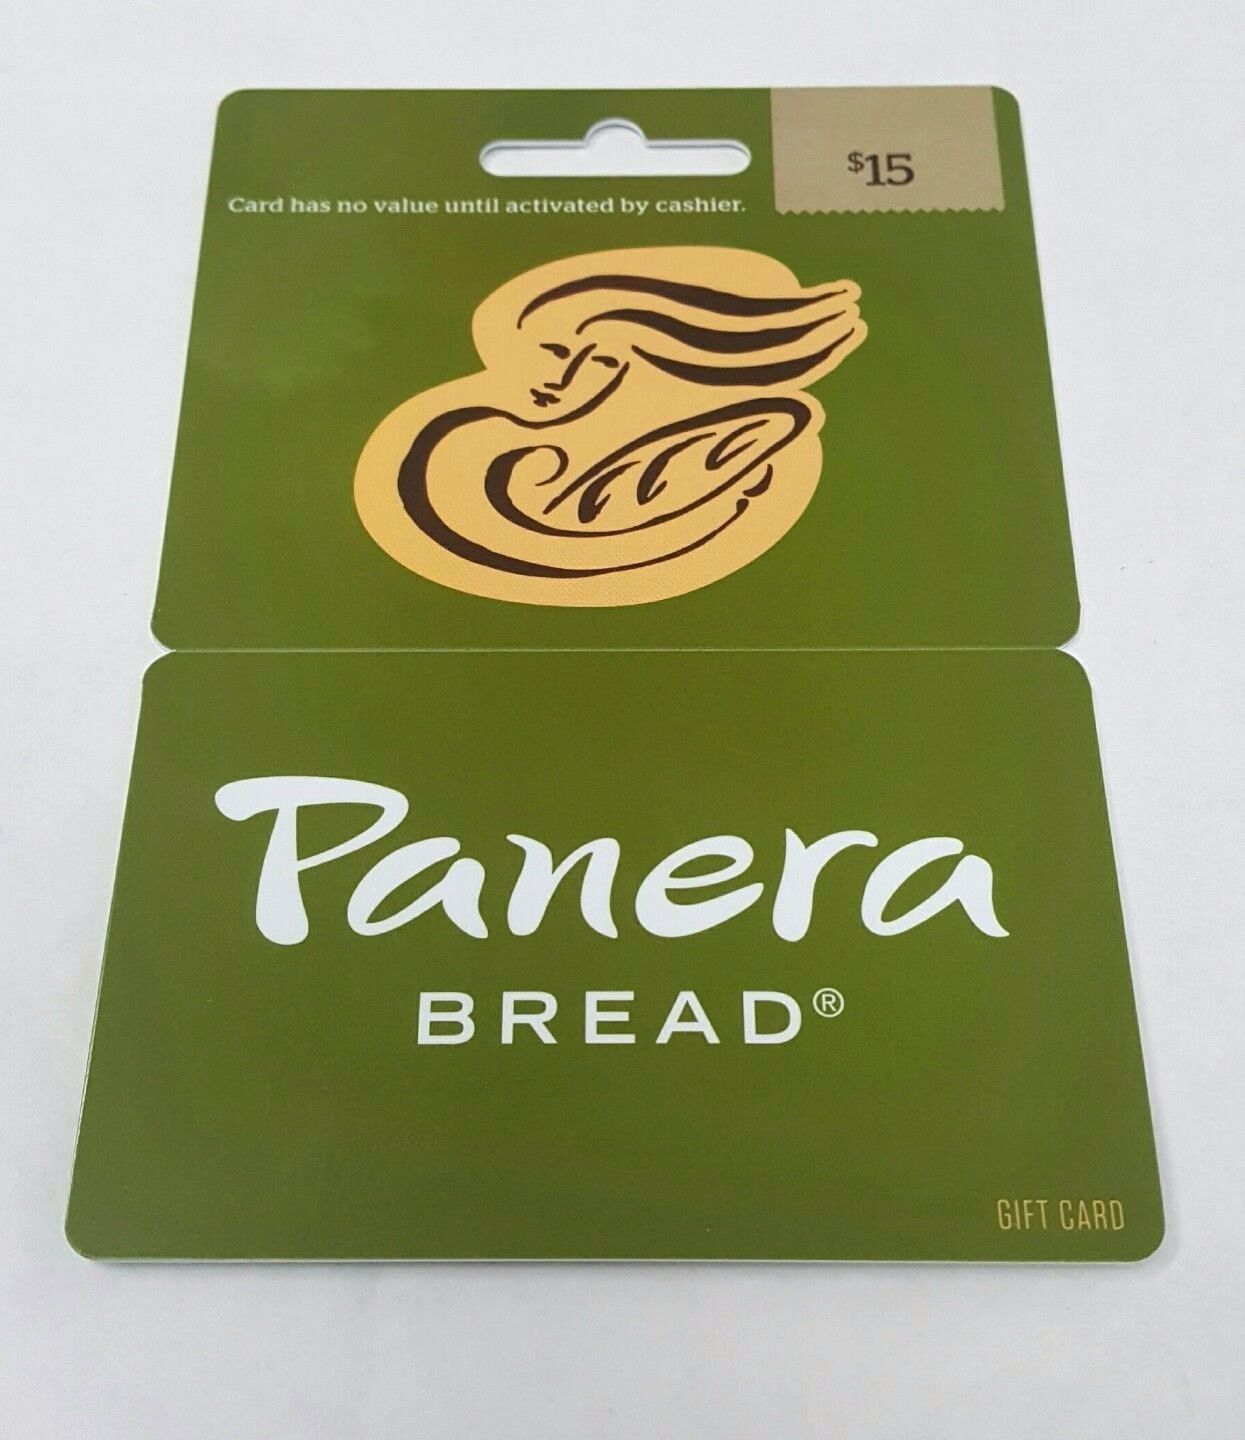 Coupons #GiftCards $15 Panera Bread Gift Card #Coupons #GiftCards ...